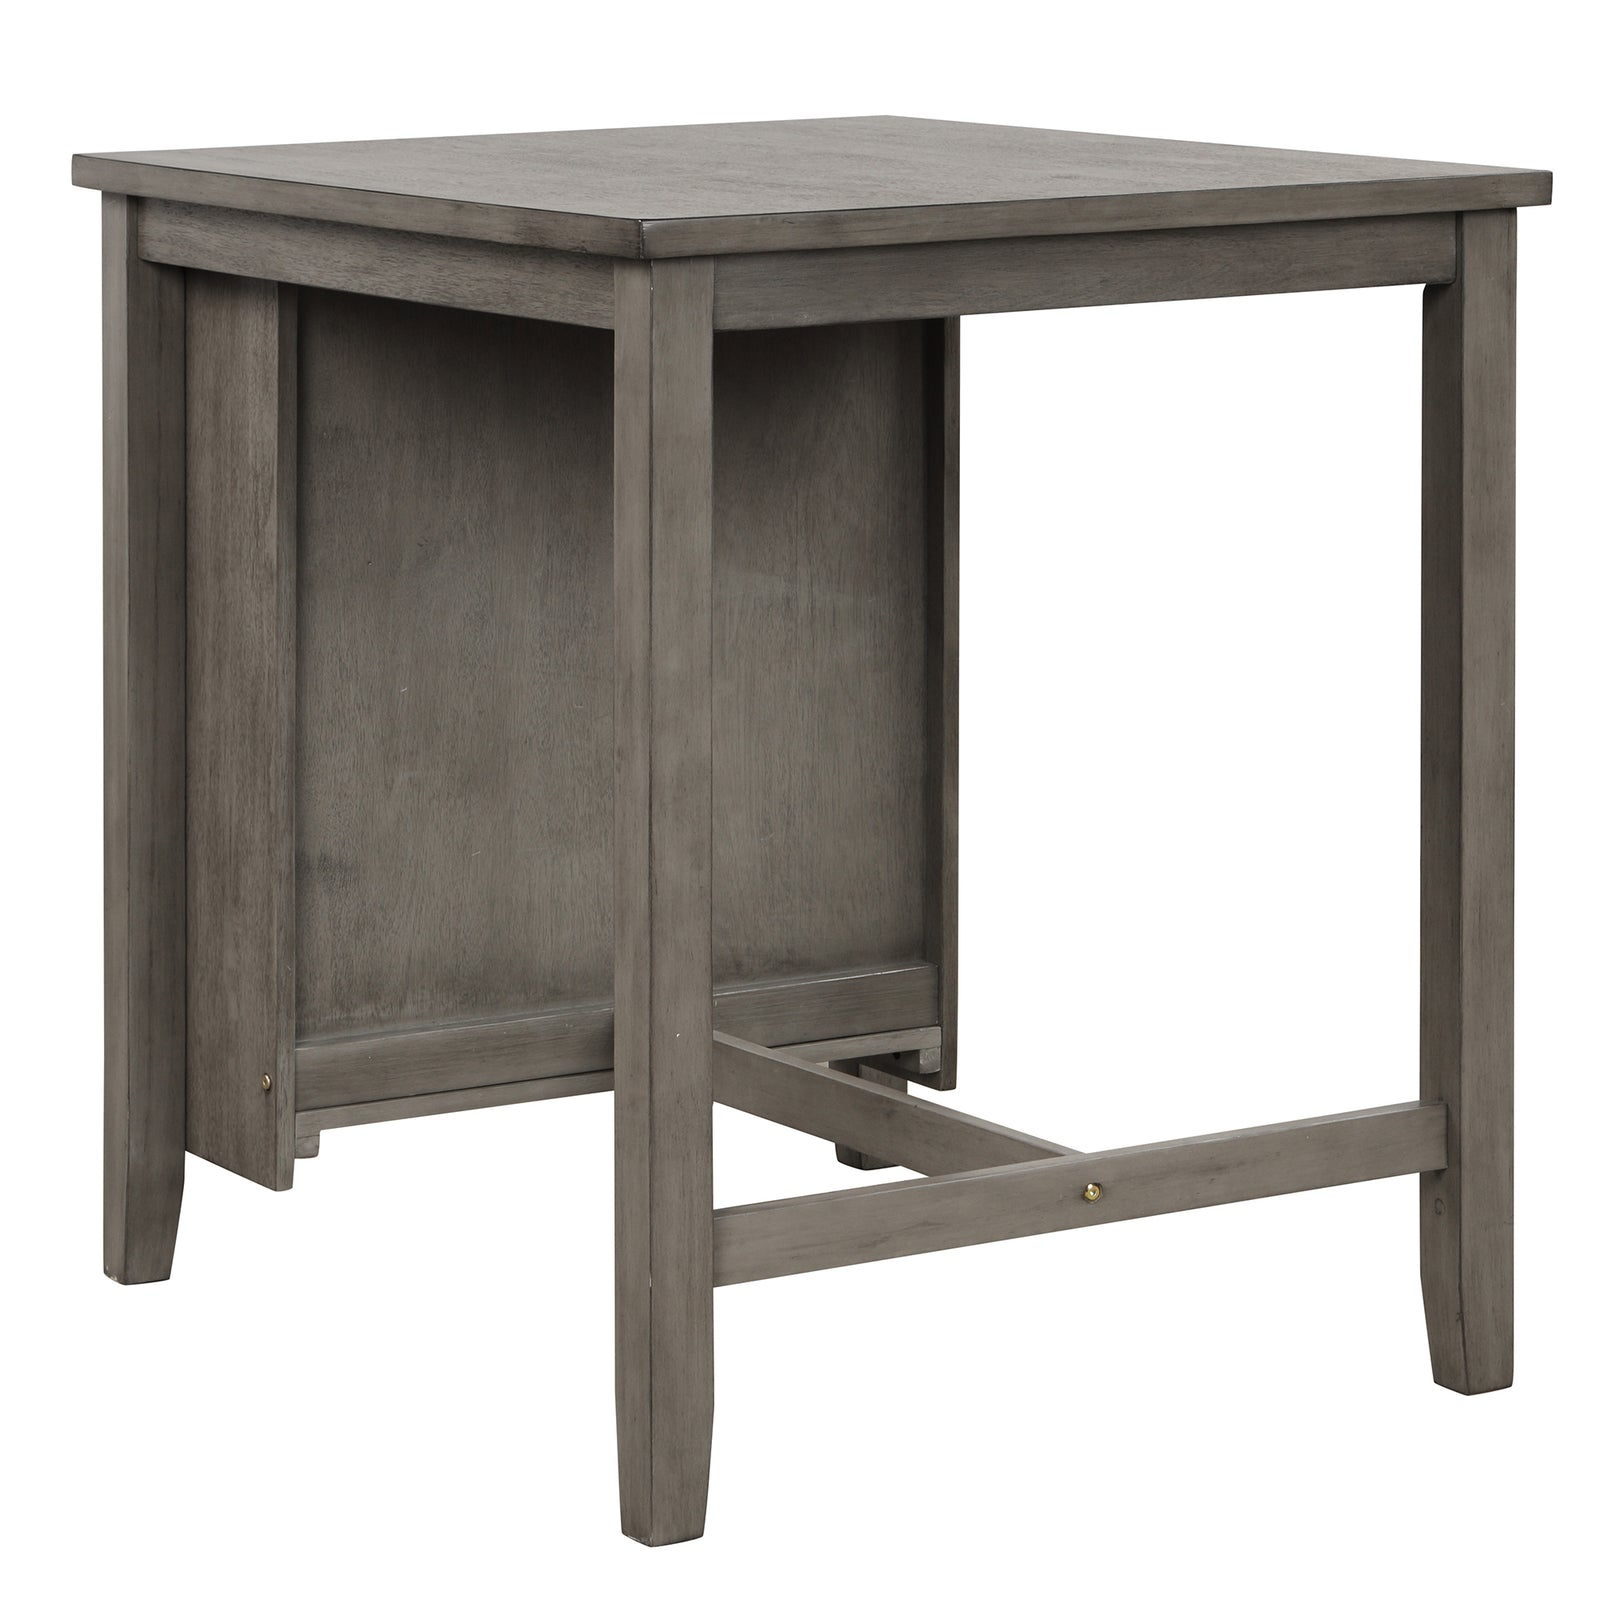 3 Counts - Square Dining Table with Padded Stools, Table Set with Storage Shelf Dark Gray - Table